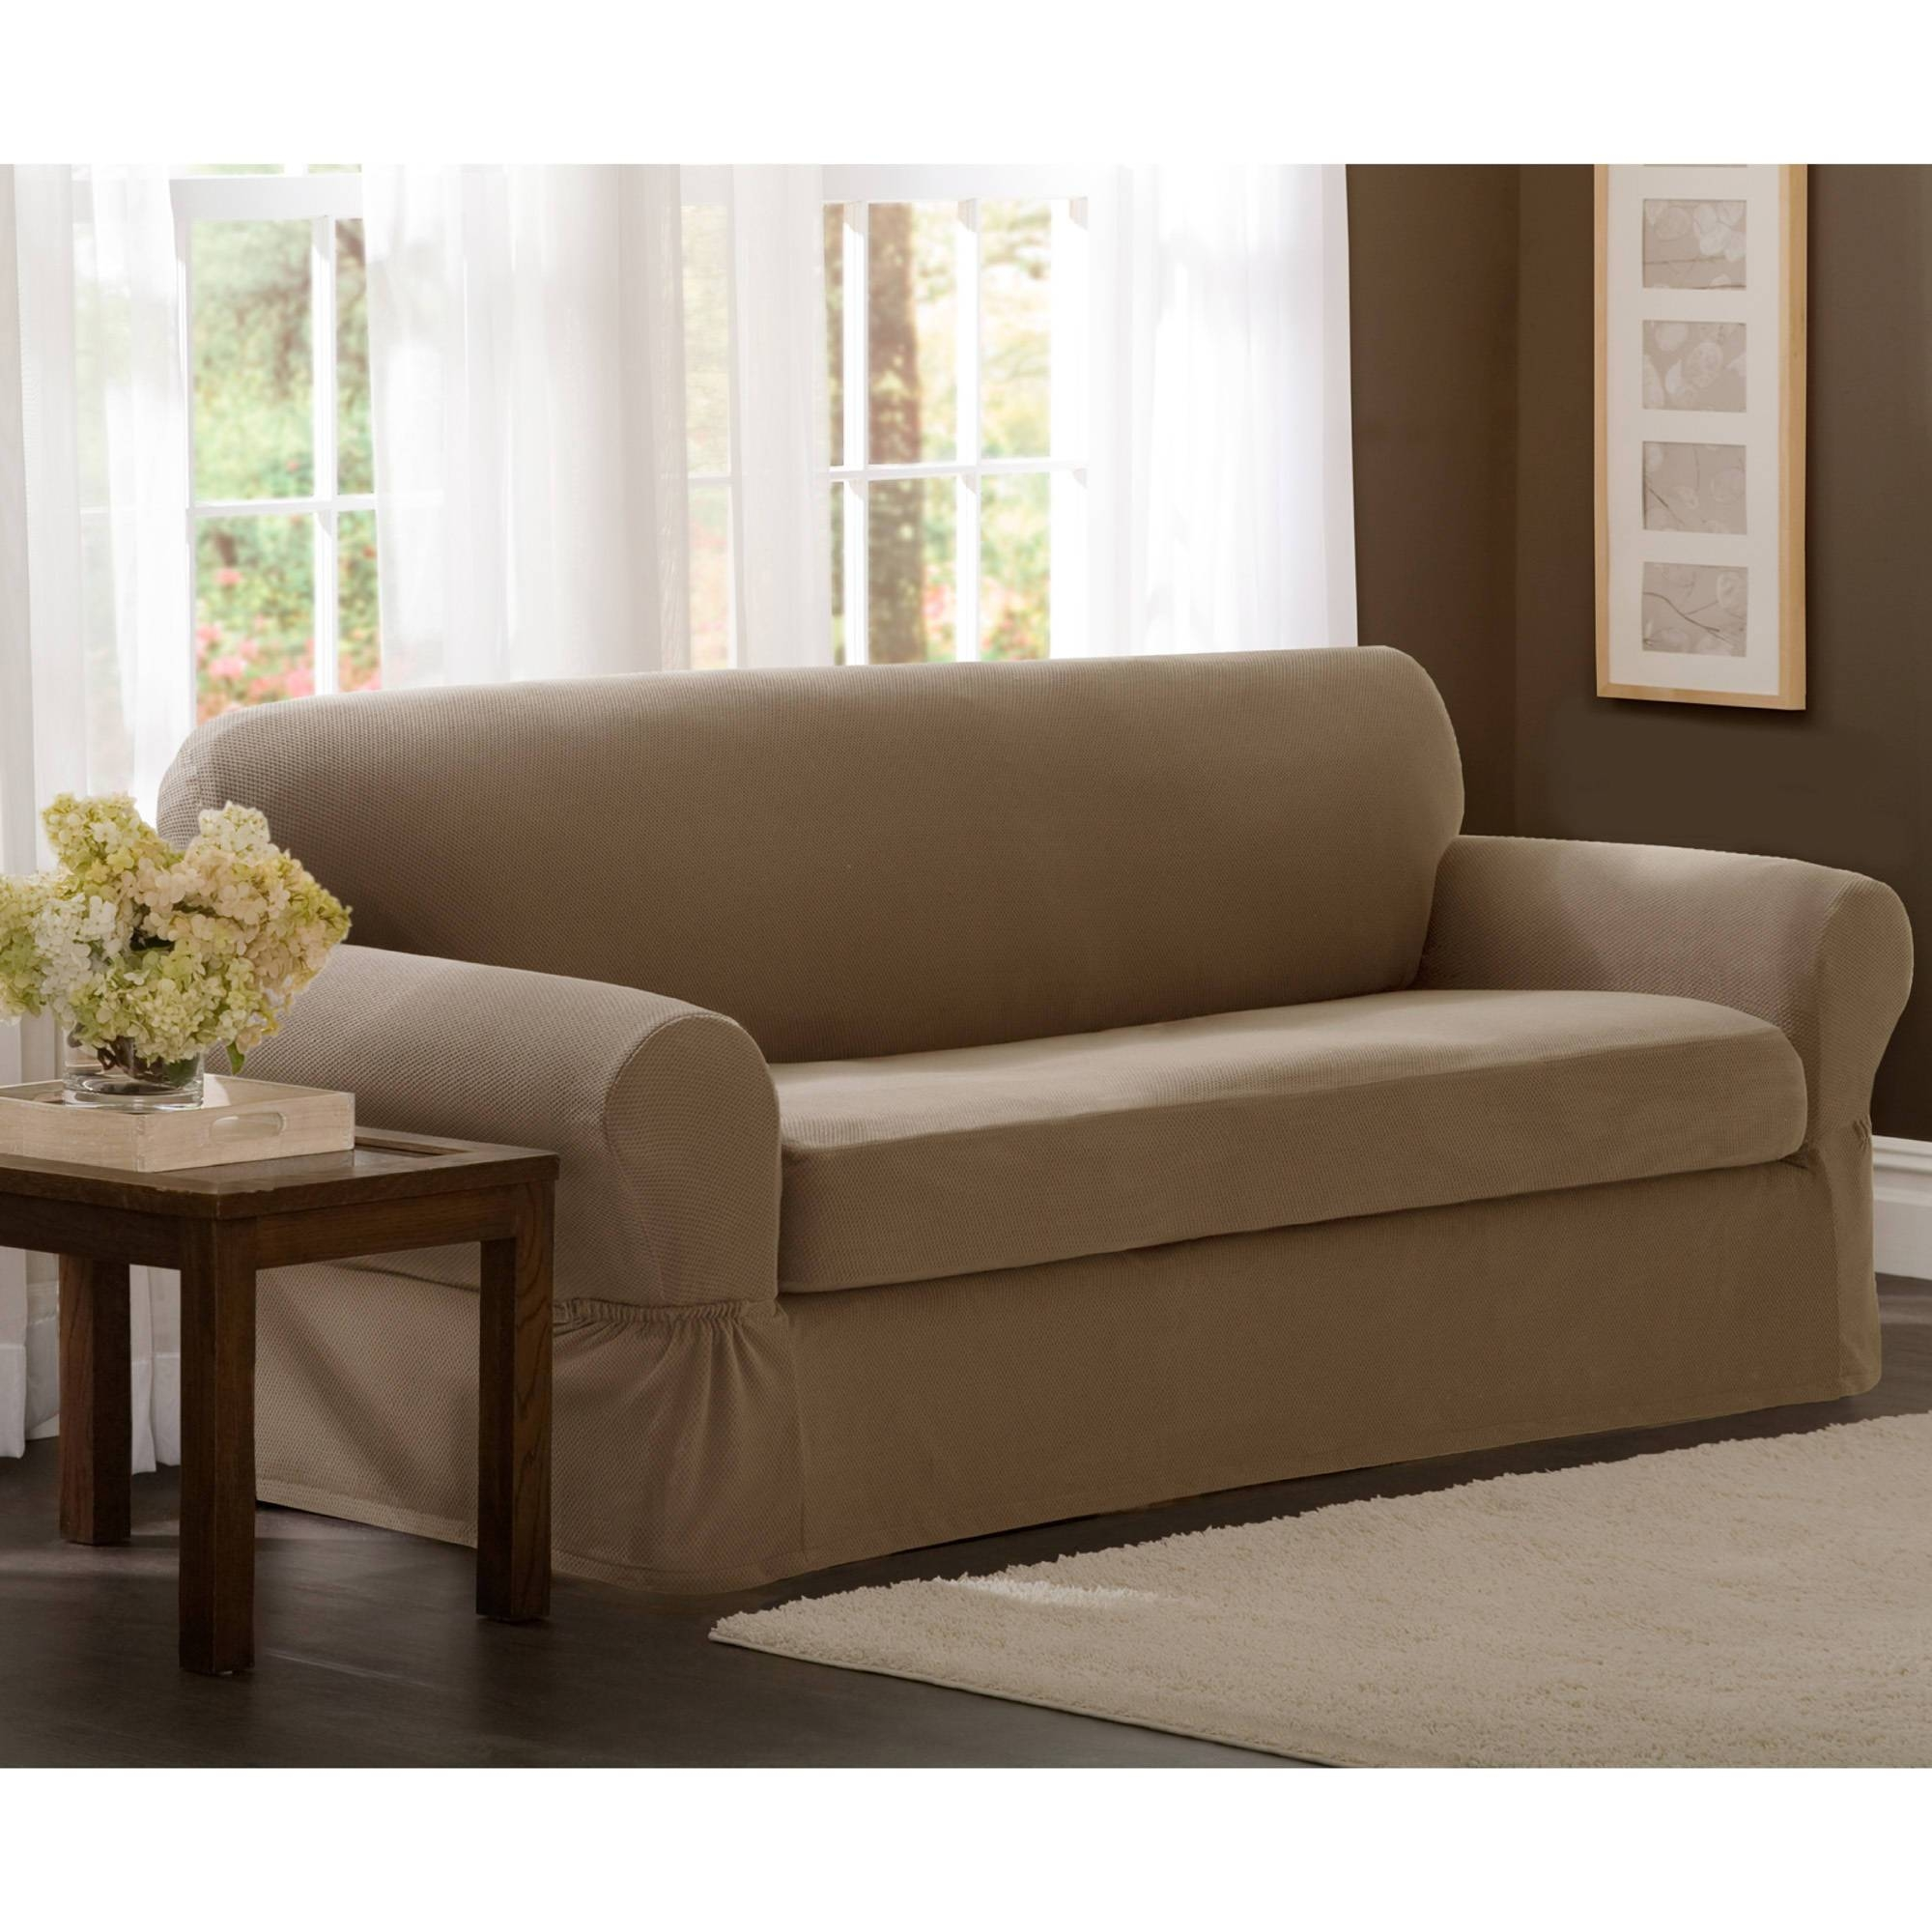 Maytex Stretch 2-Piece Sofa Slipcover - Walmart intended for Loveseat Slipcovers 3 Pieces (Image 9 of 15)